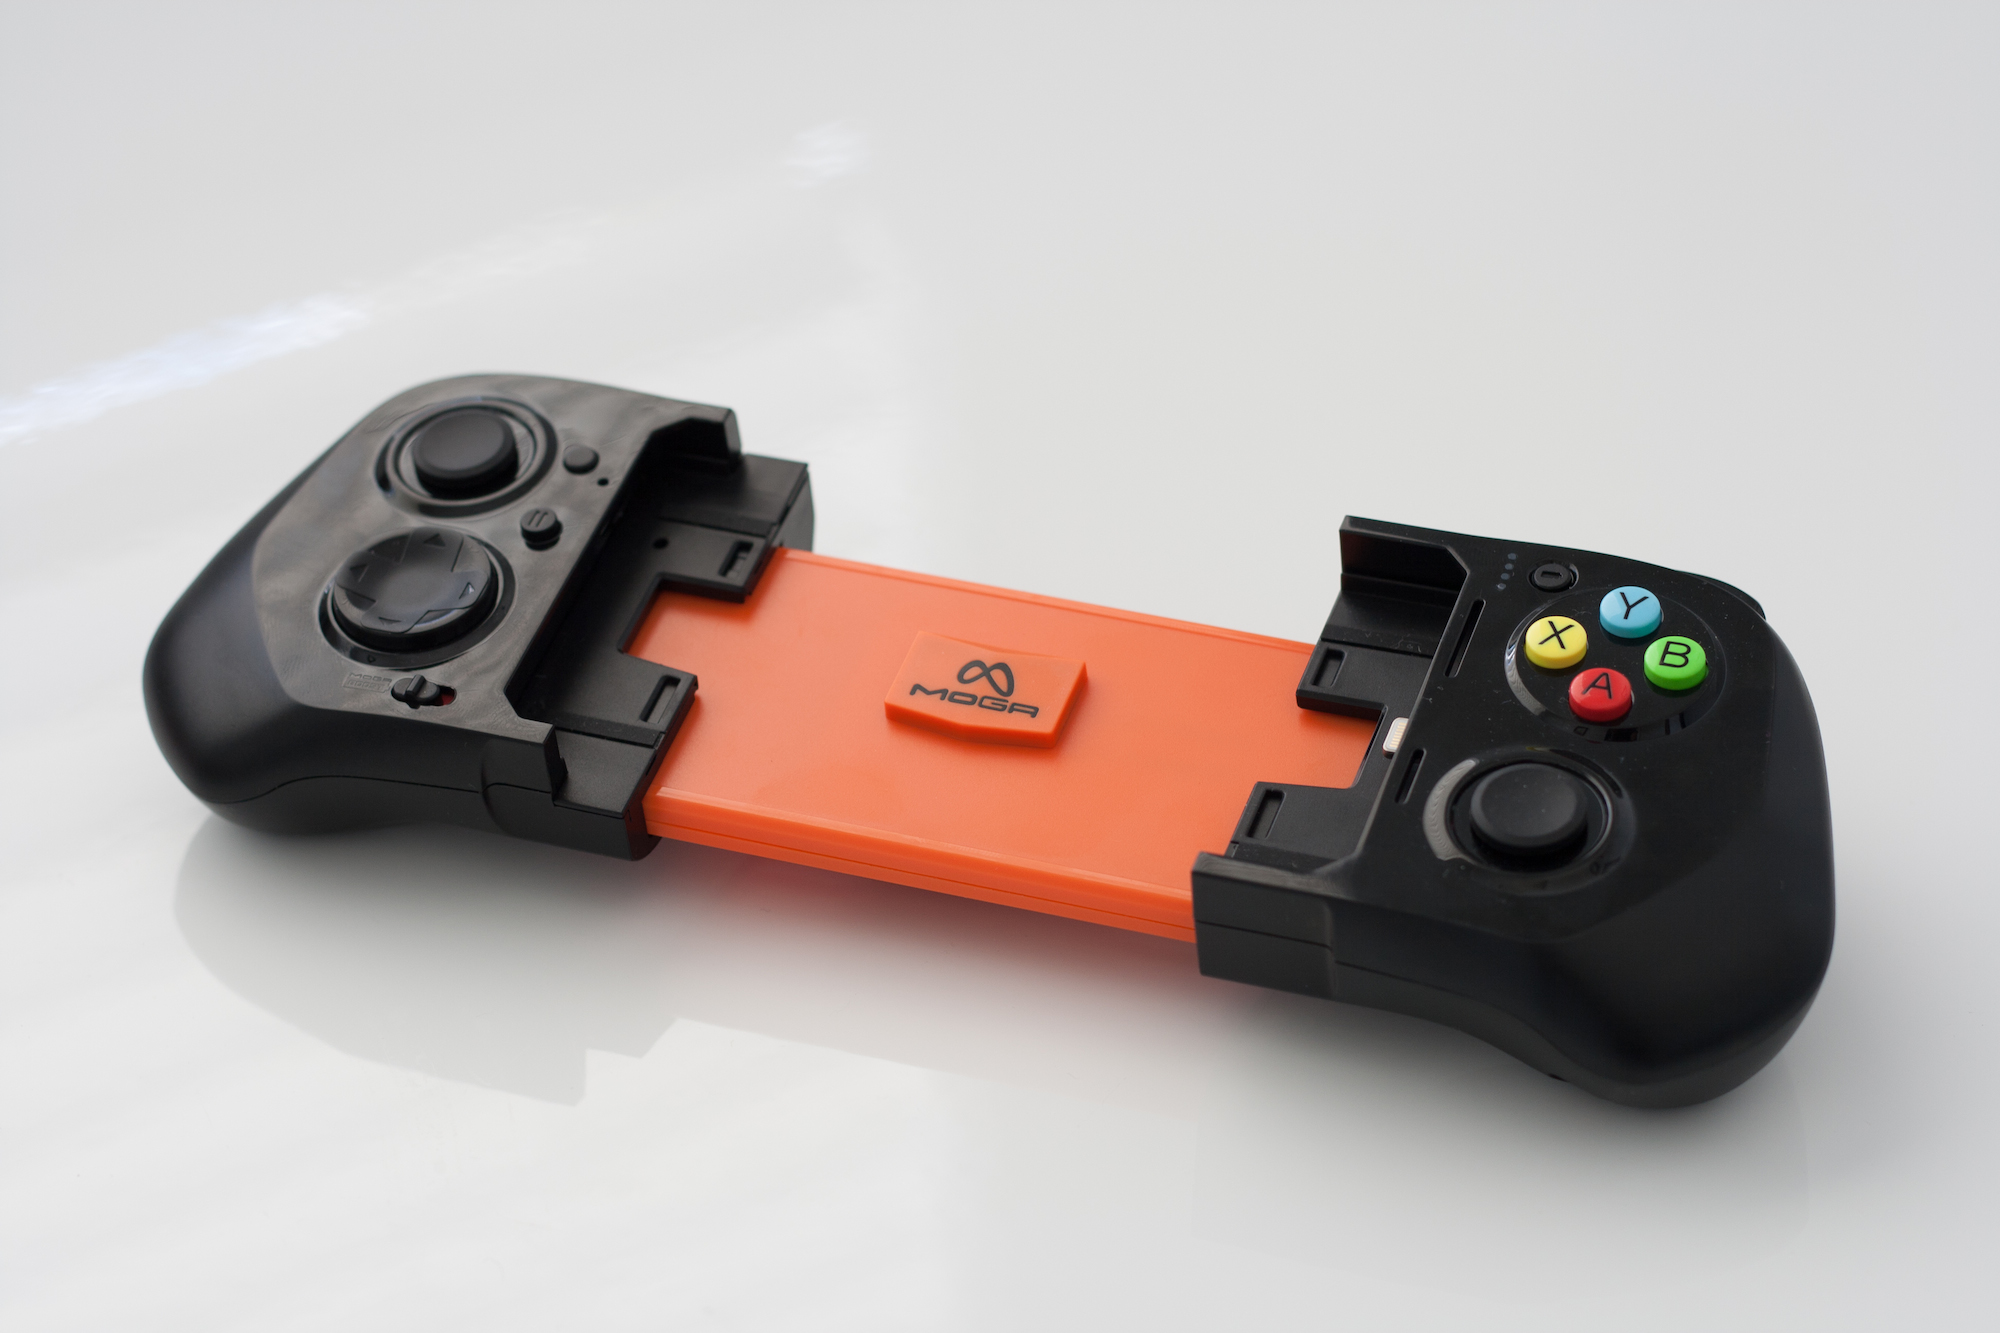 moga-ace-power-iphone-controller-australian-review-without-iphone